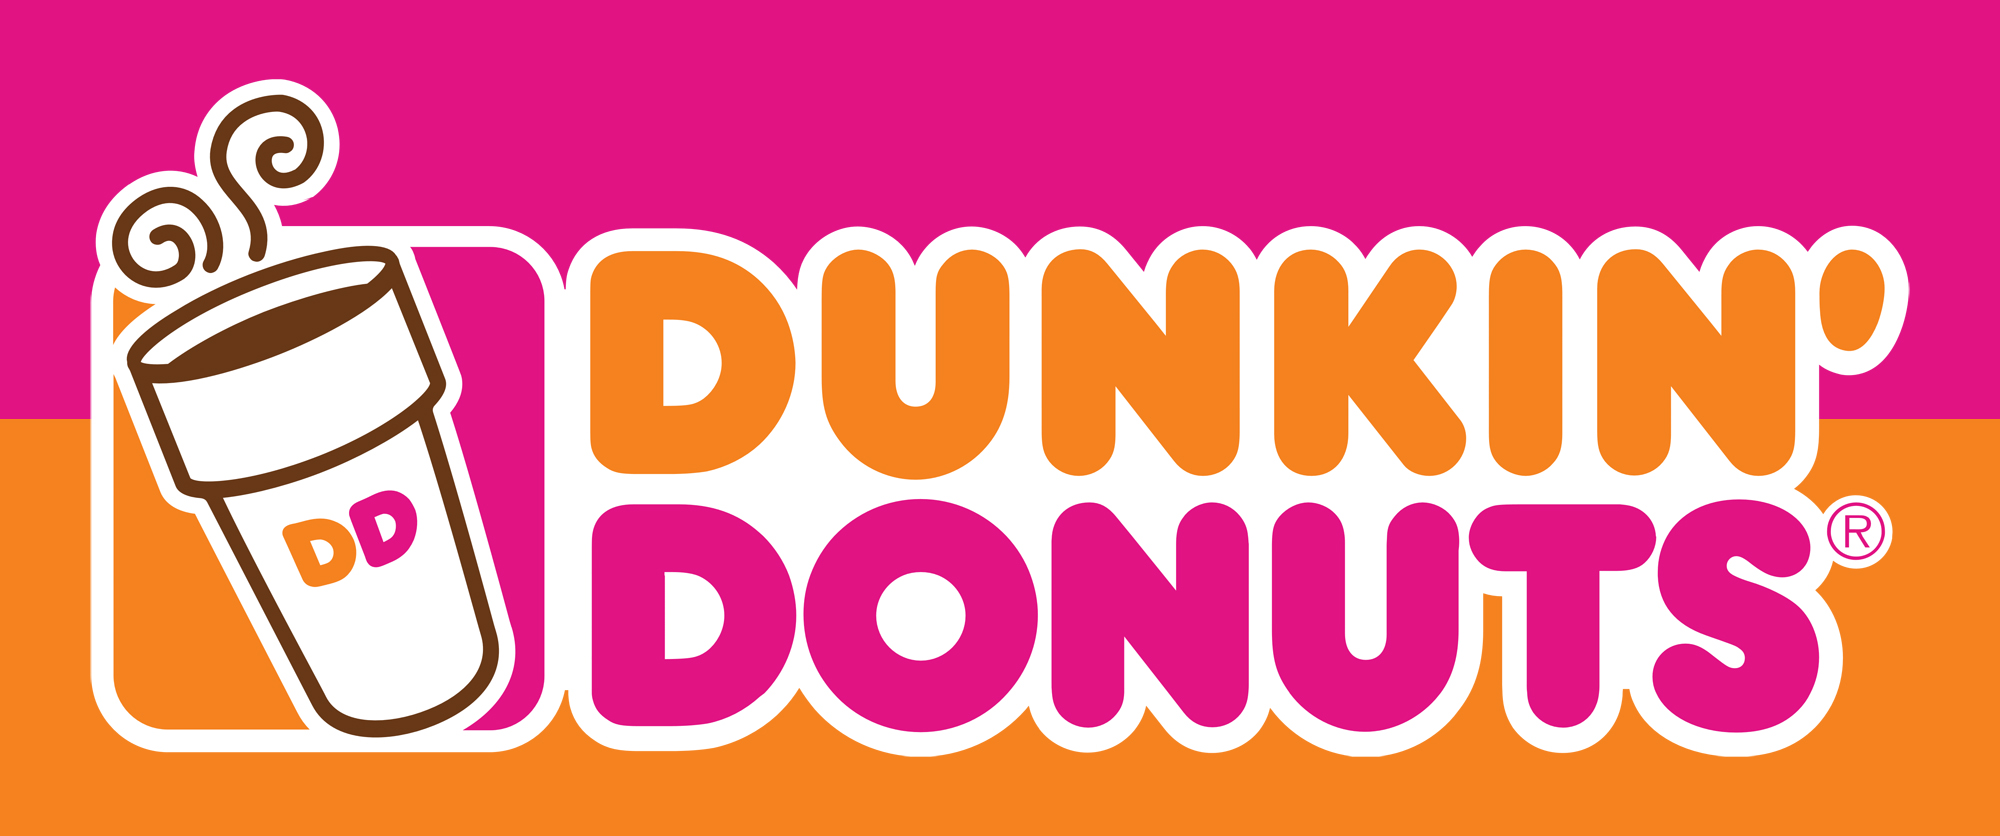 Meaning Dunkin Donuts logo and symbol.